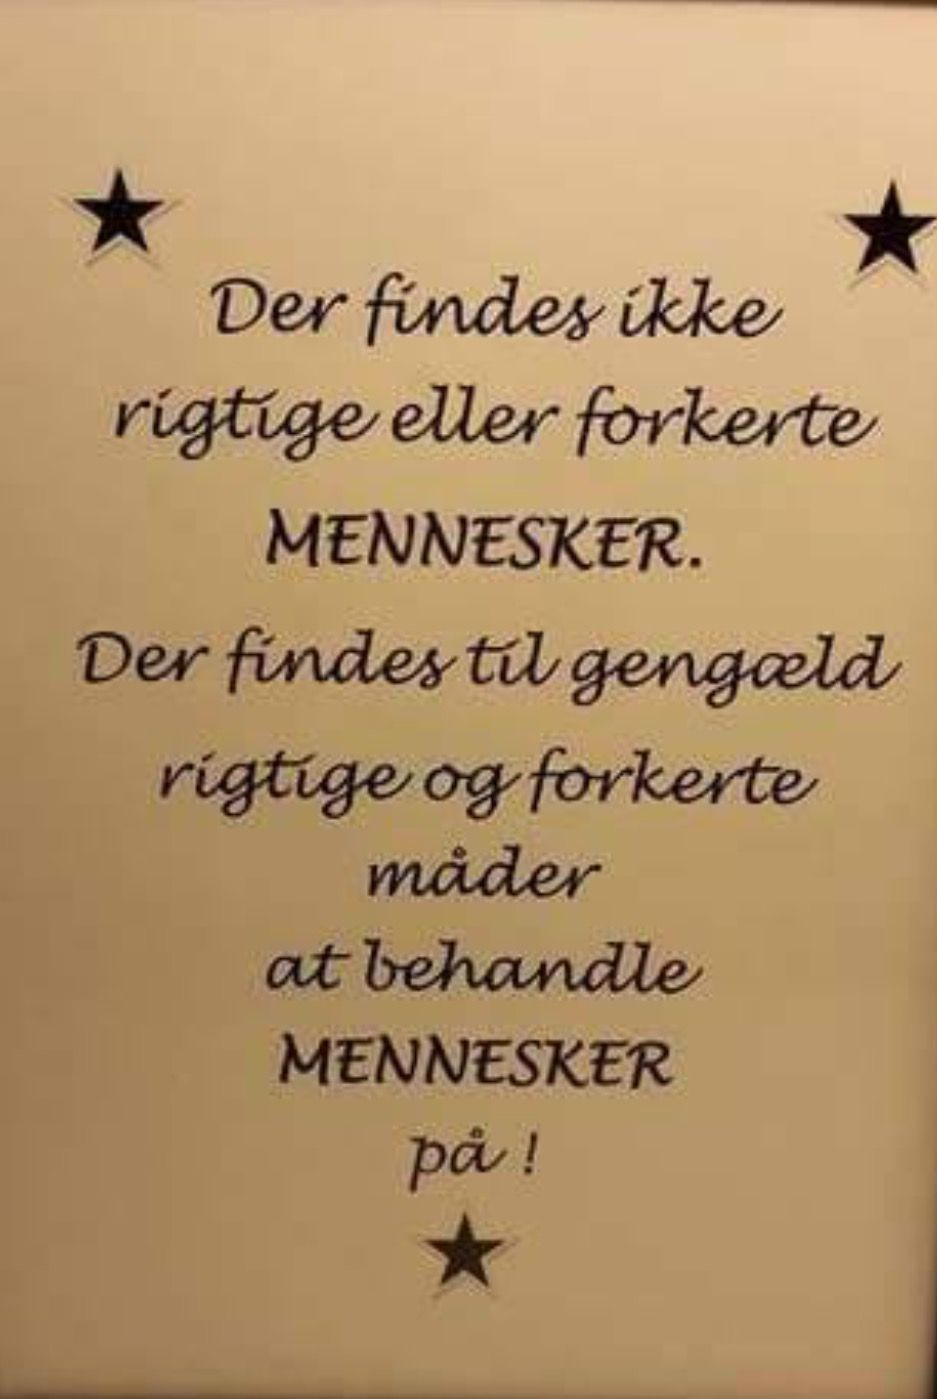 citater kommunikation Pin af Dorte på citater | Pinterest | Quotes, Wise words og Sayings citater kommunikation